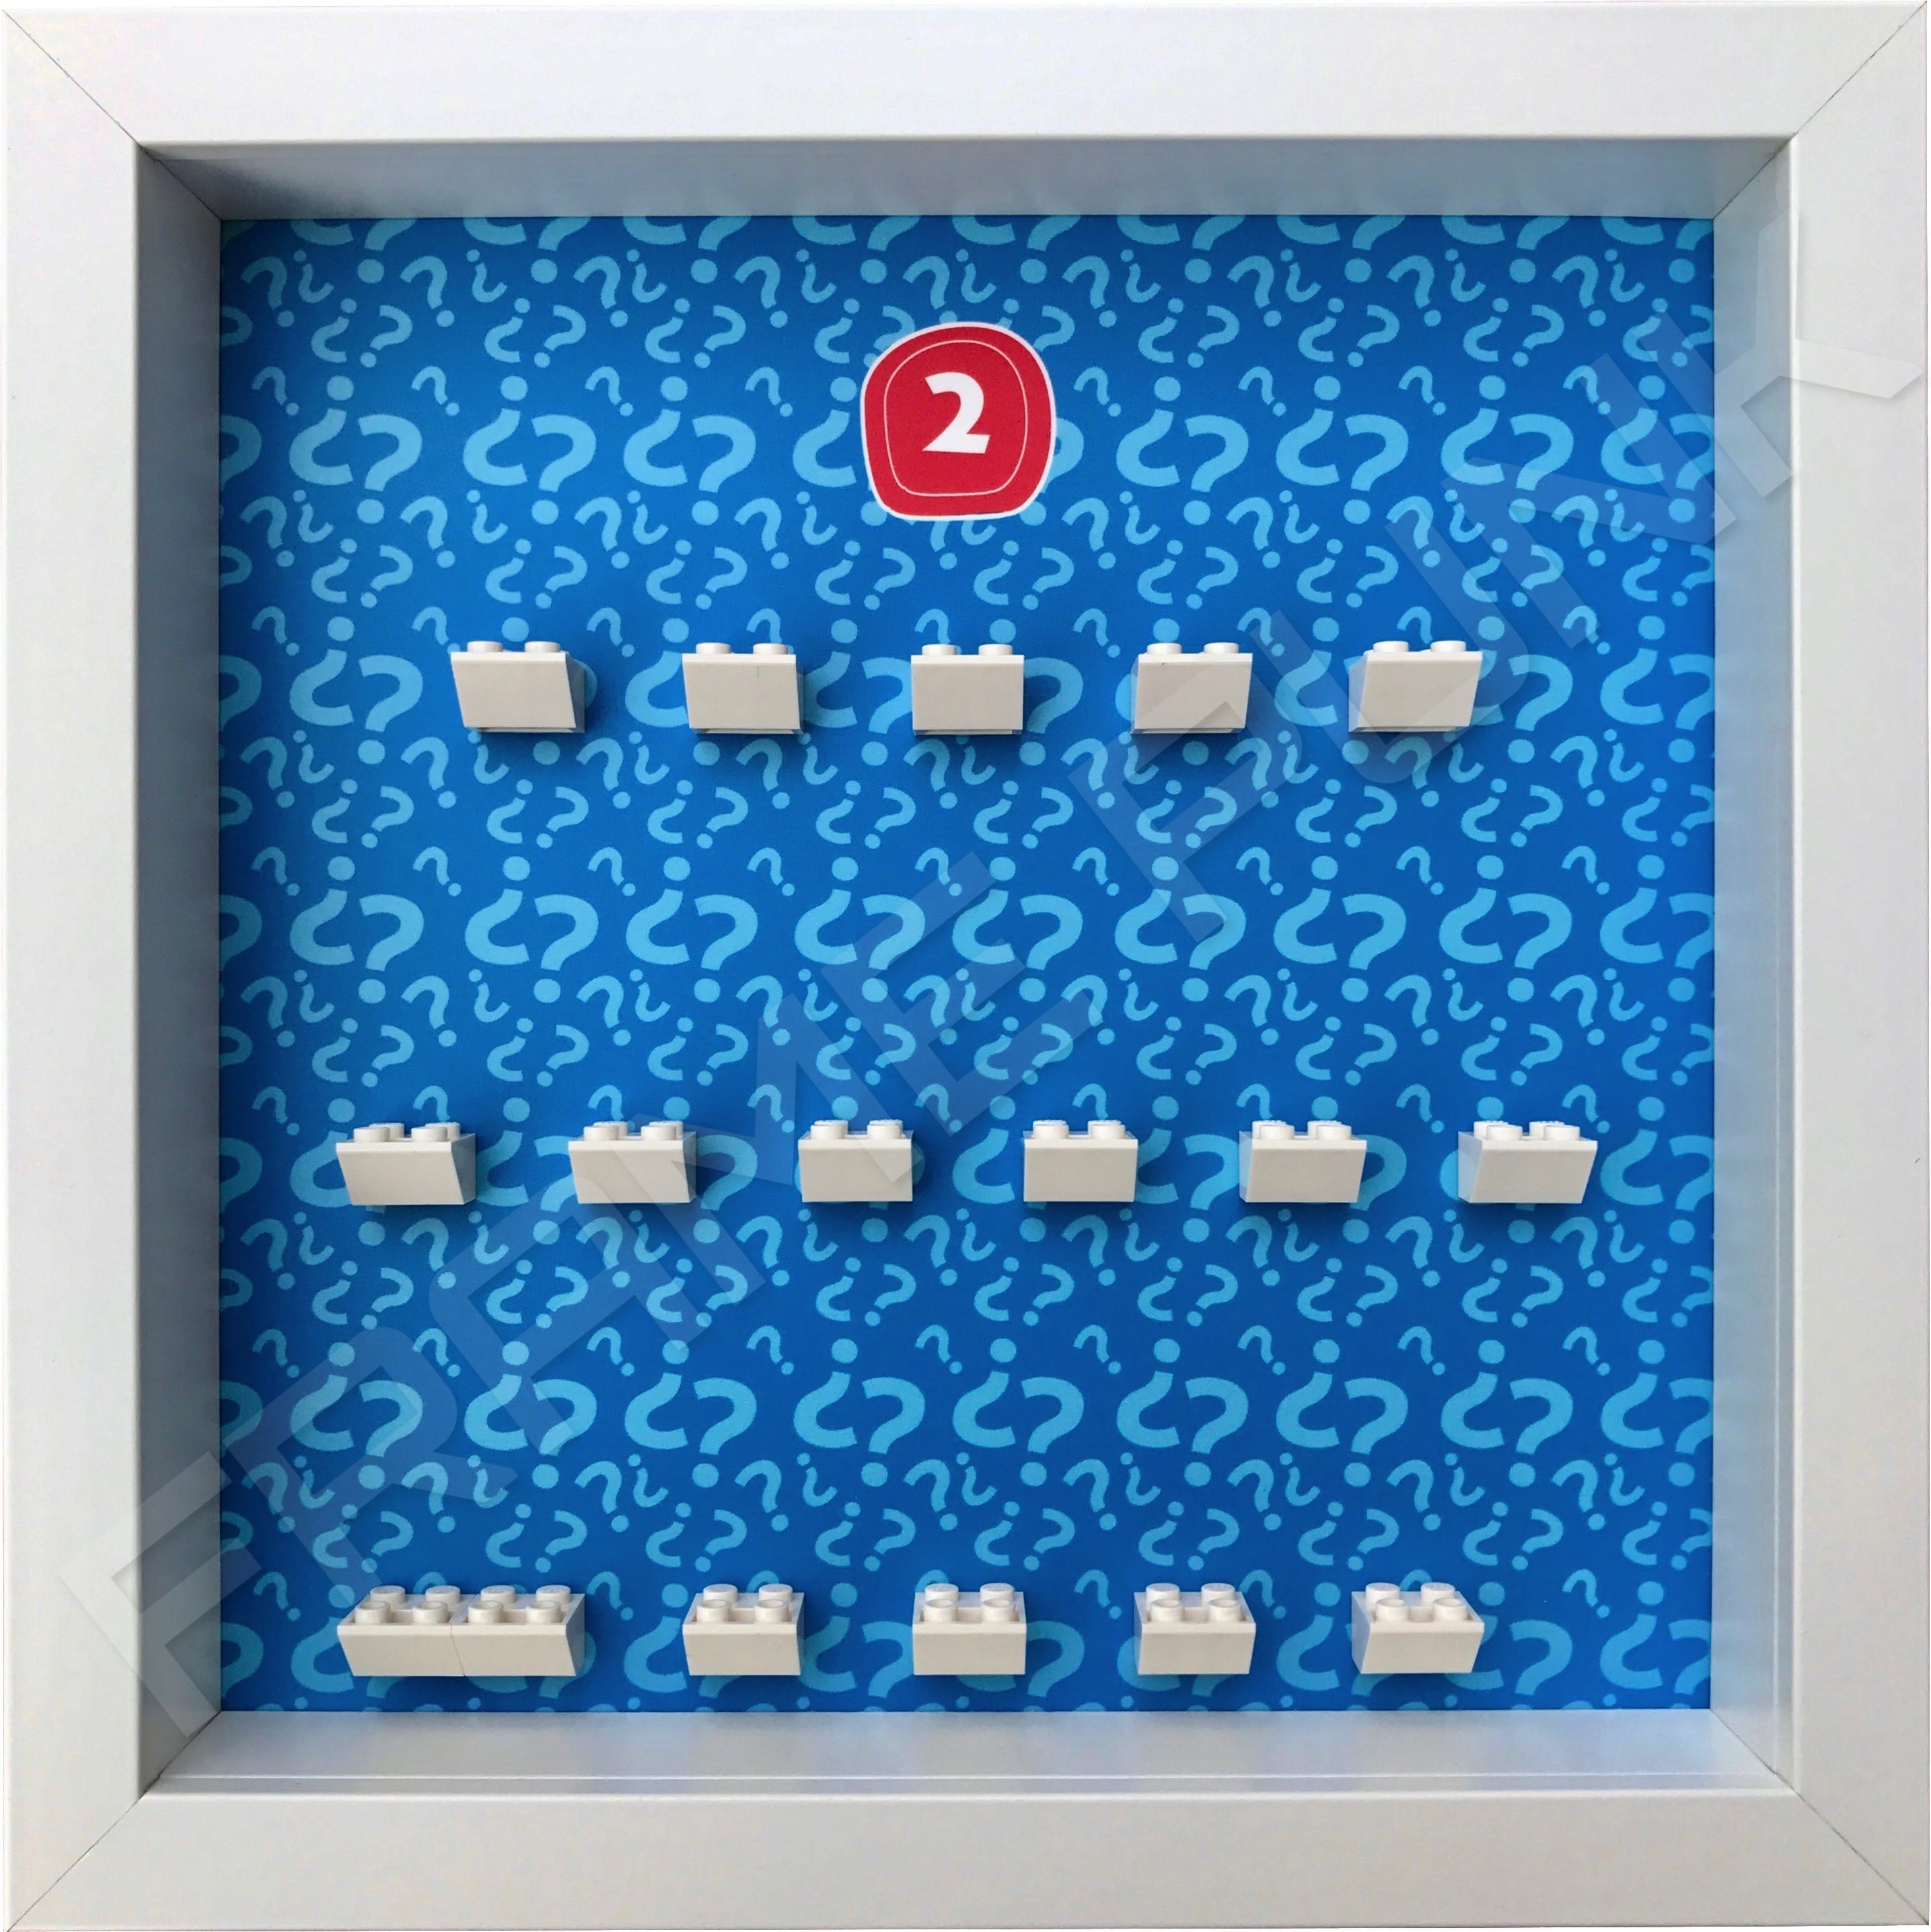 Lego minifigures series 2 display frame